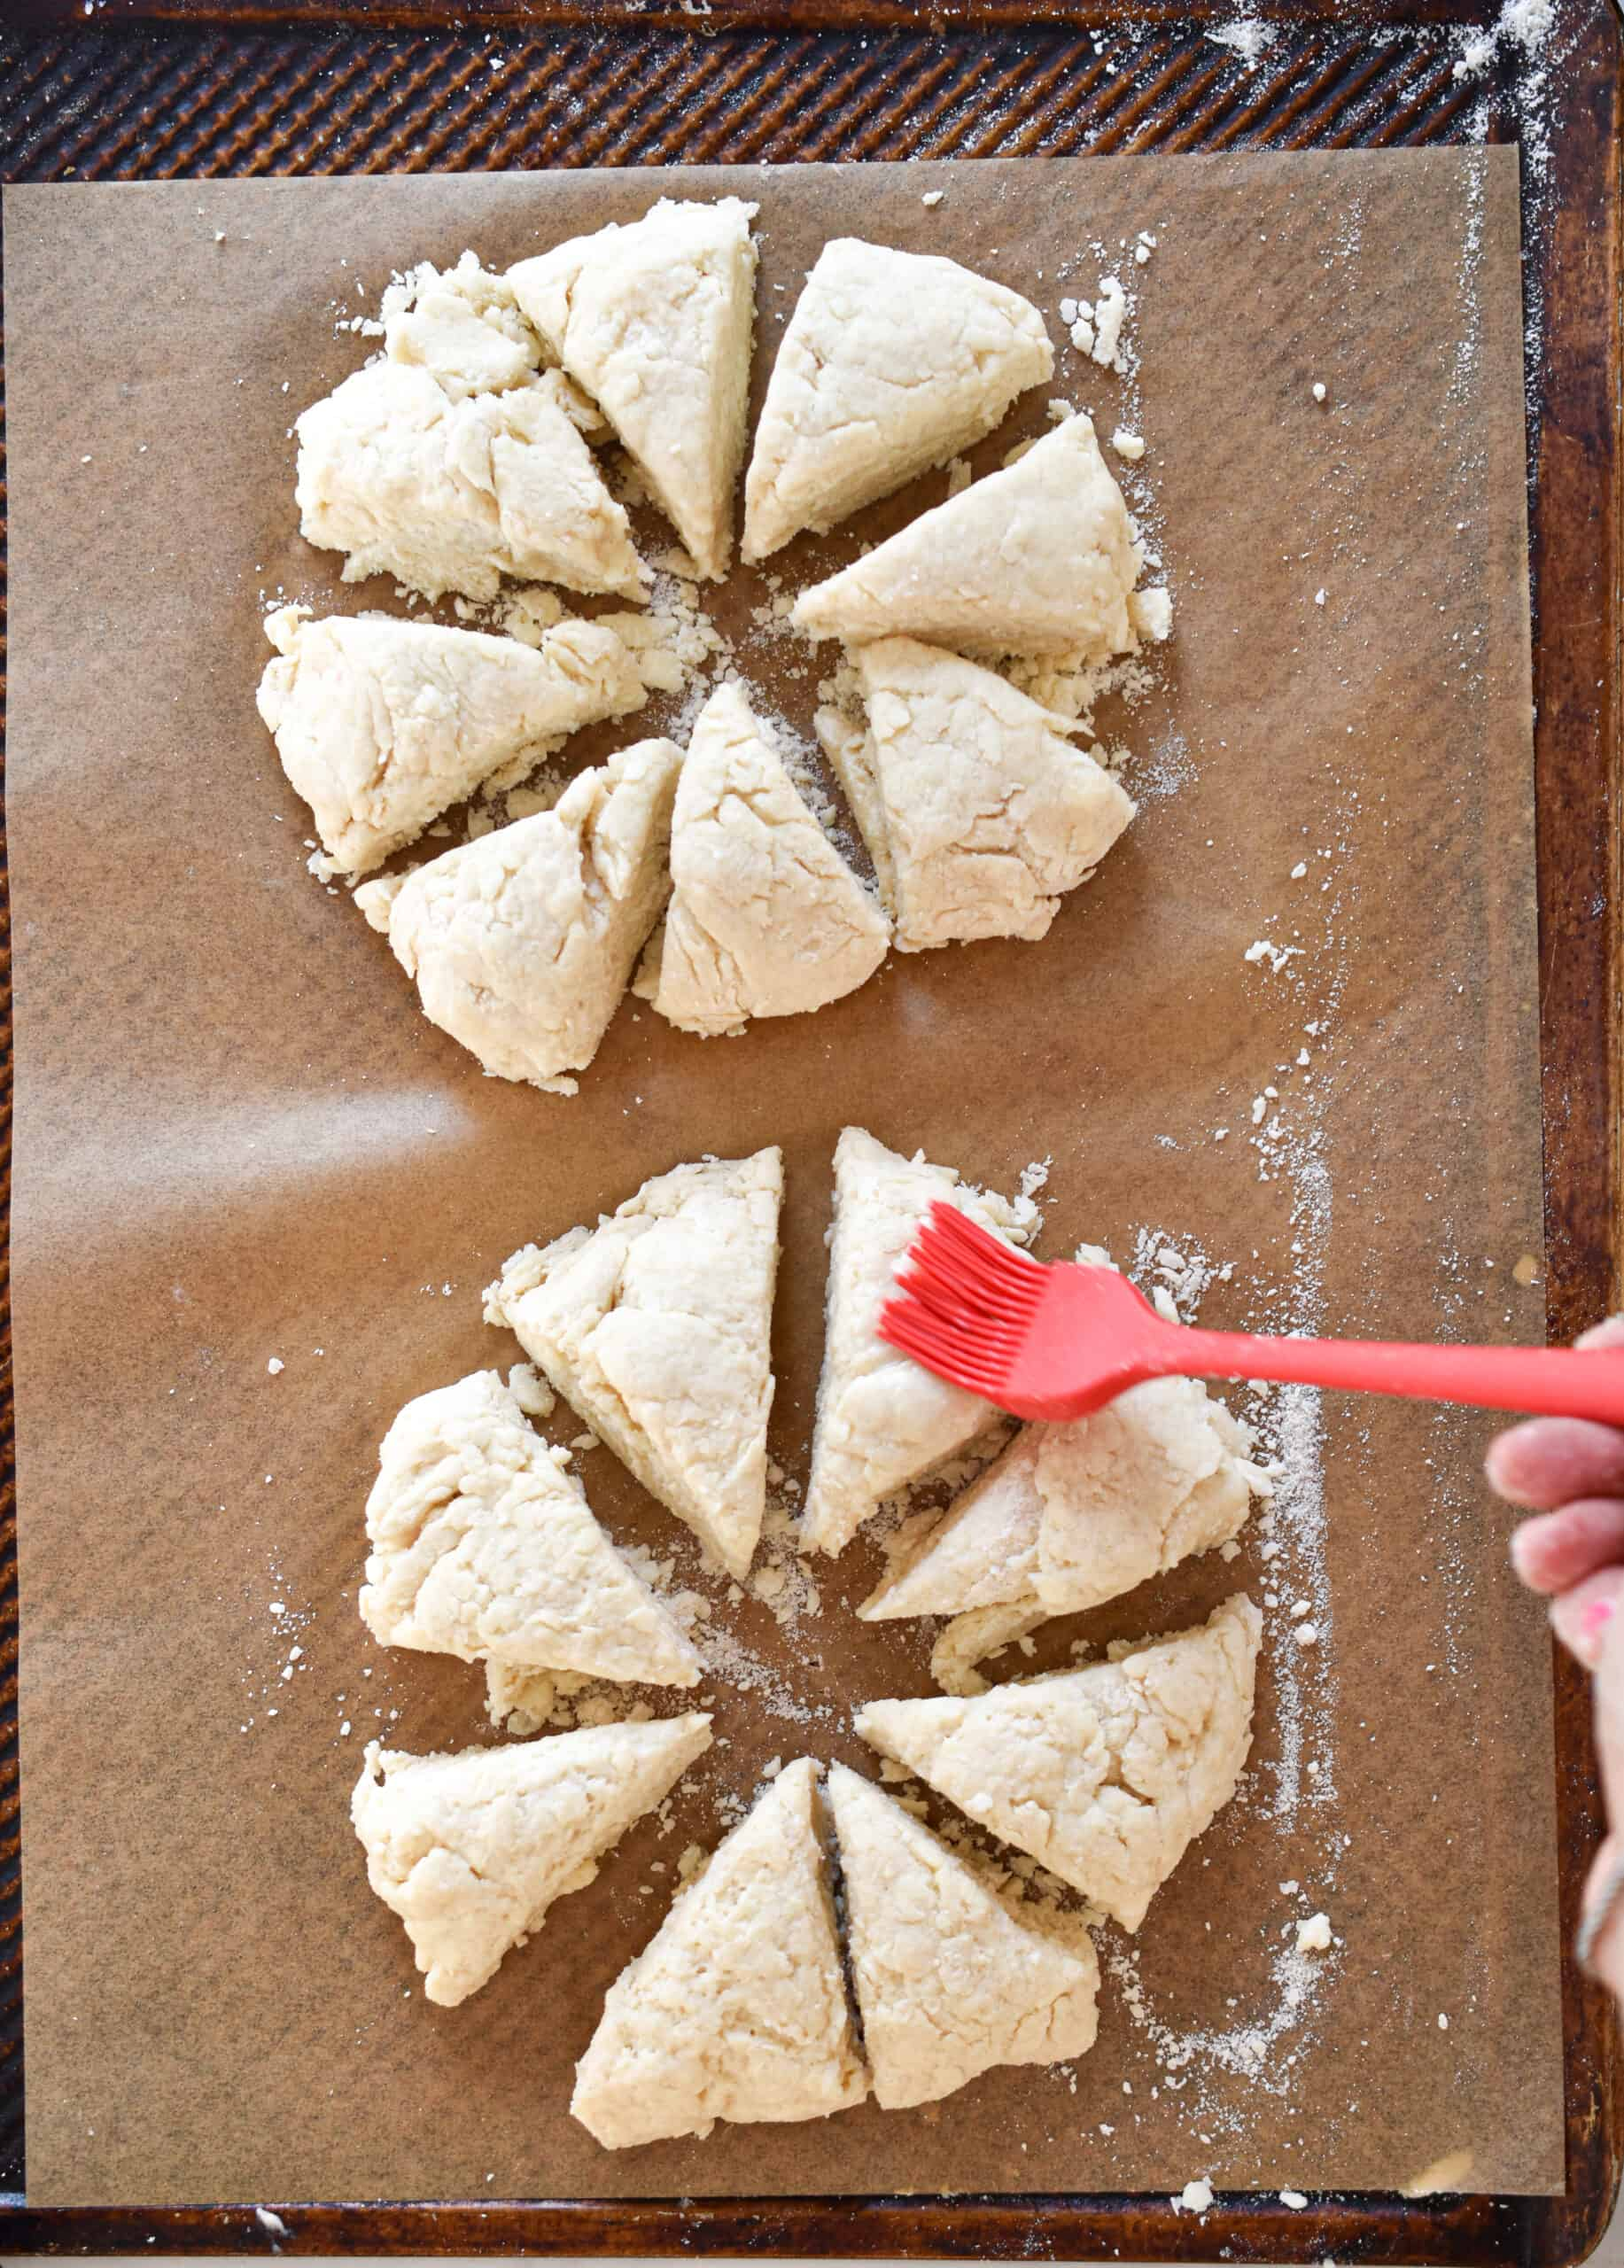 Lightly brush the scones with milk and sprinkle with sugar